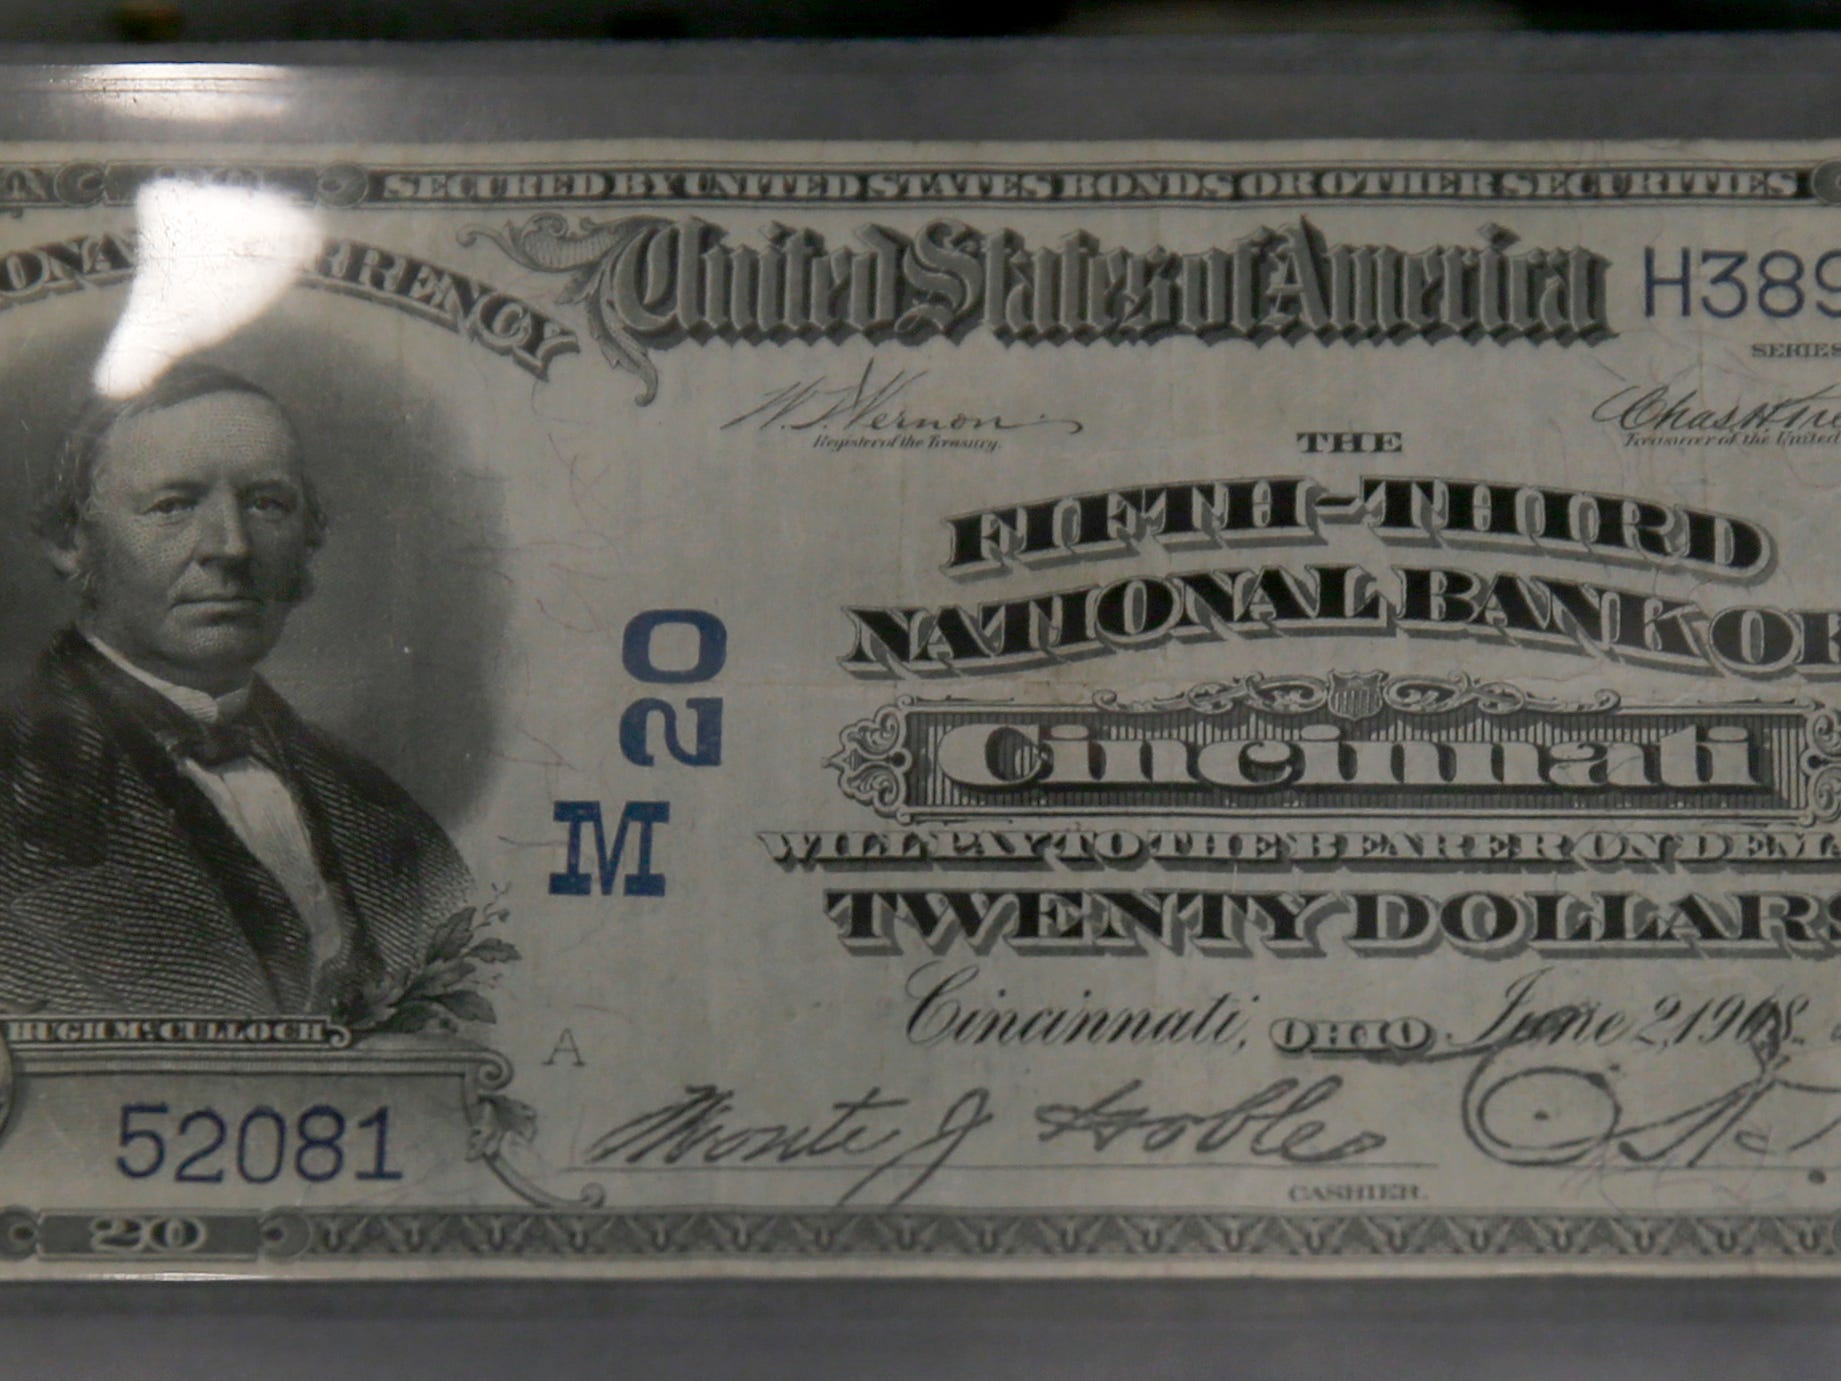 Fifth-Third National banknote from 1908, printed after the 1907 Bankers' Panic. National banknotes like these were hand-signed by the banks' president and cashier. These notes are from Series 1902. Series numbers on currency are not always indicative of the year the notes were printed. Fifth Third Bank opened a museum on Wednesday, March 13, 2019, at headquarters that chronicles the people, places, and events that built the bank. The museum will be open to the public Tuesday through Friday, 10 a.m. to 4 p.m., features various artifacts as well as rotating exhibits.